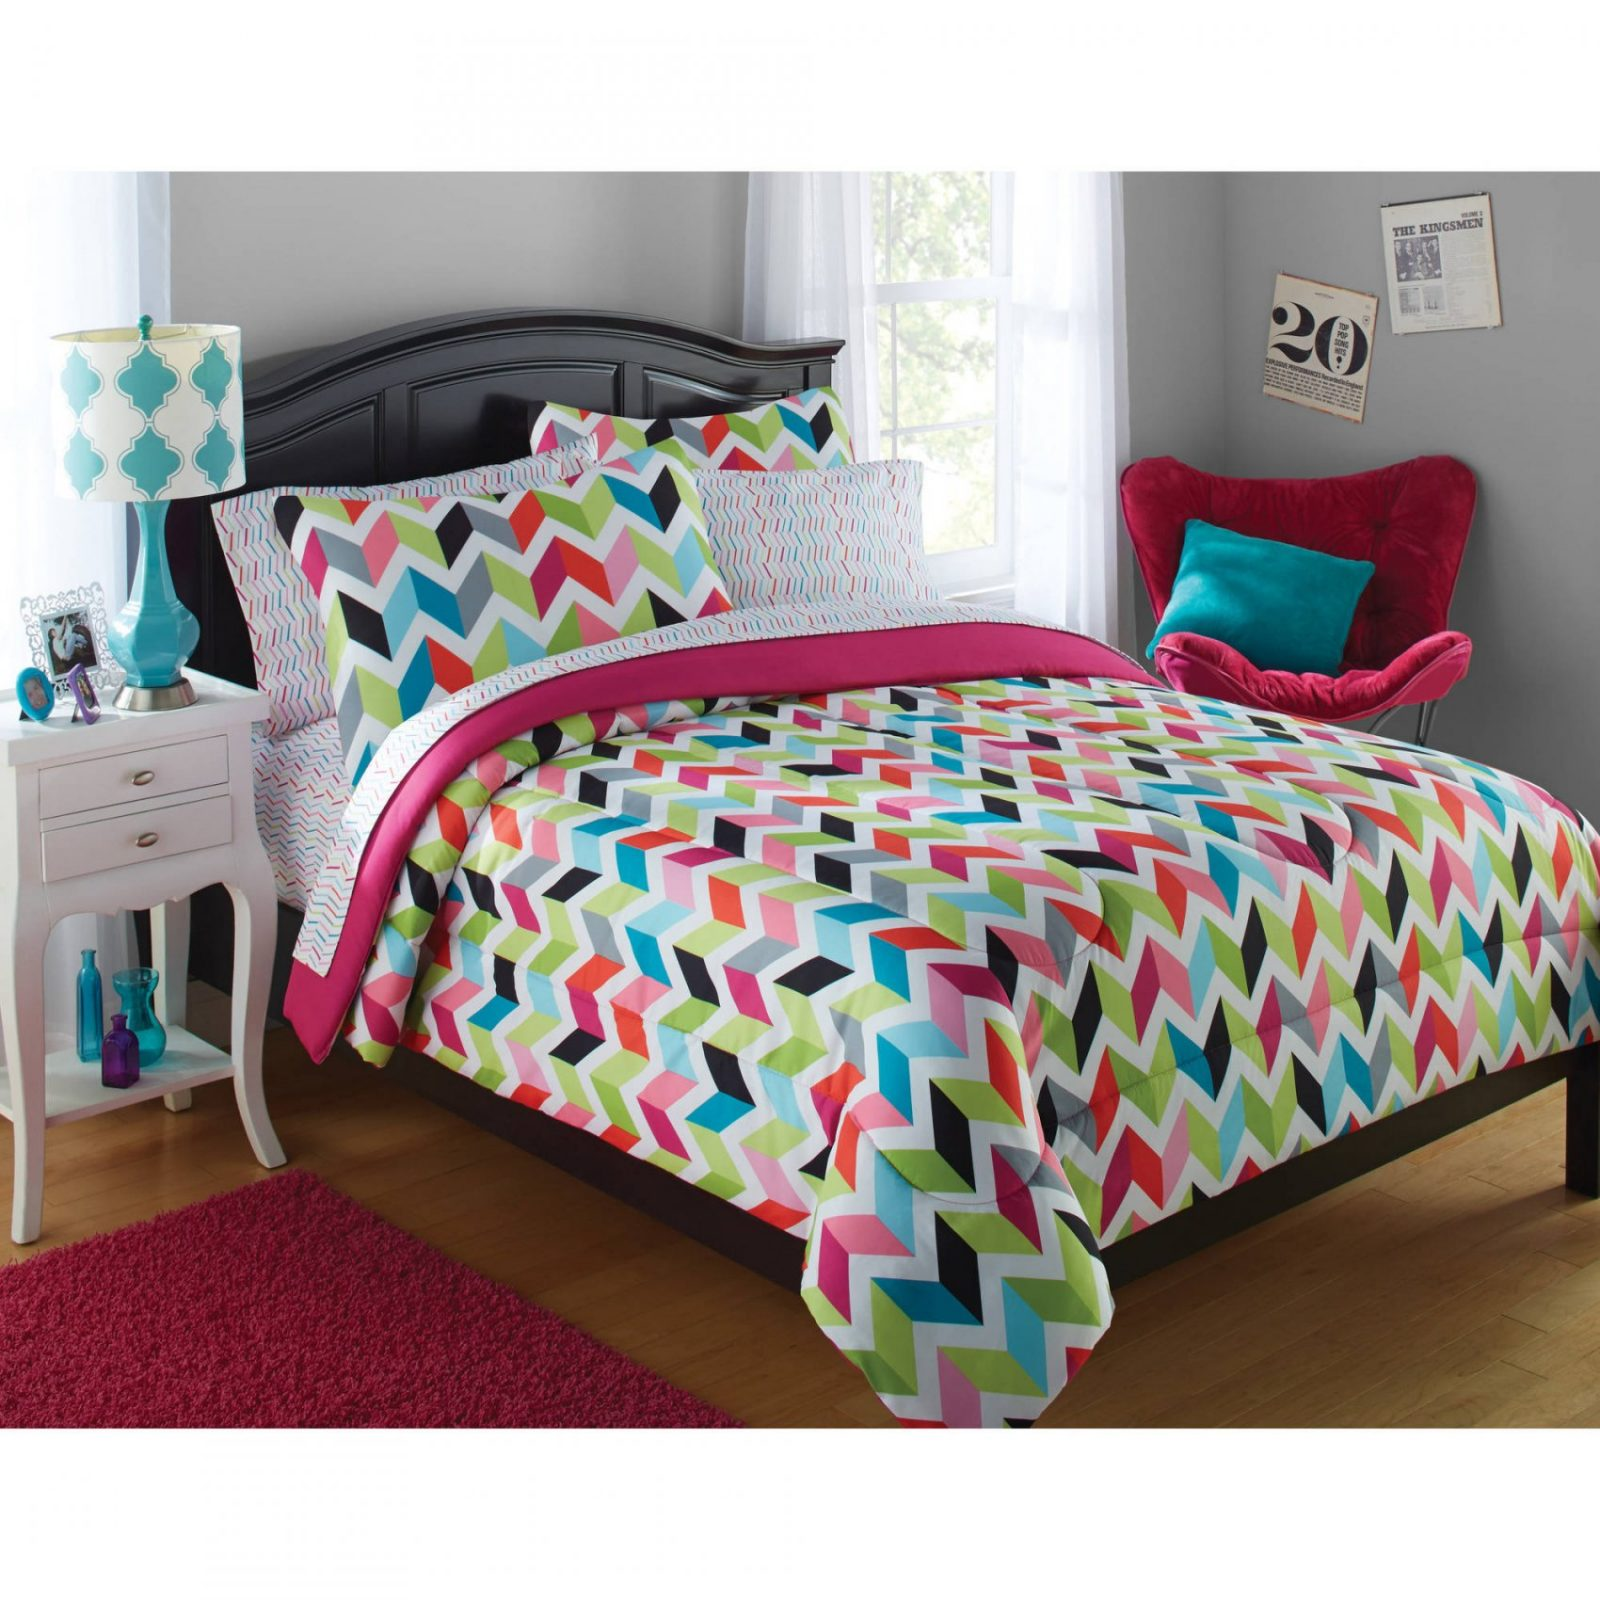 Colorful Sheets Queen  Thinkpawsitive von Polka Dotted Bed Sheets Bild